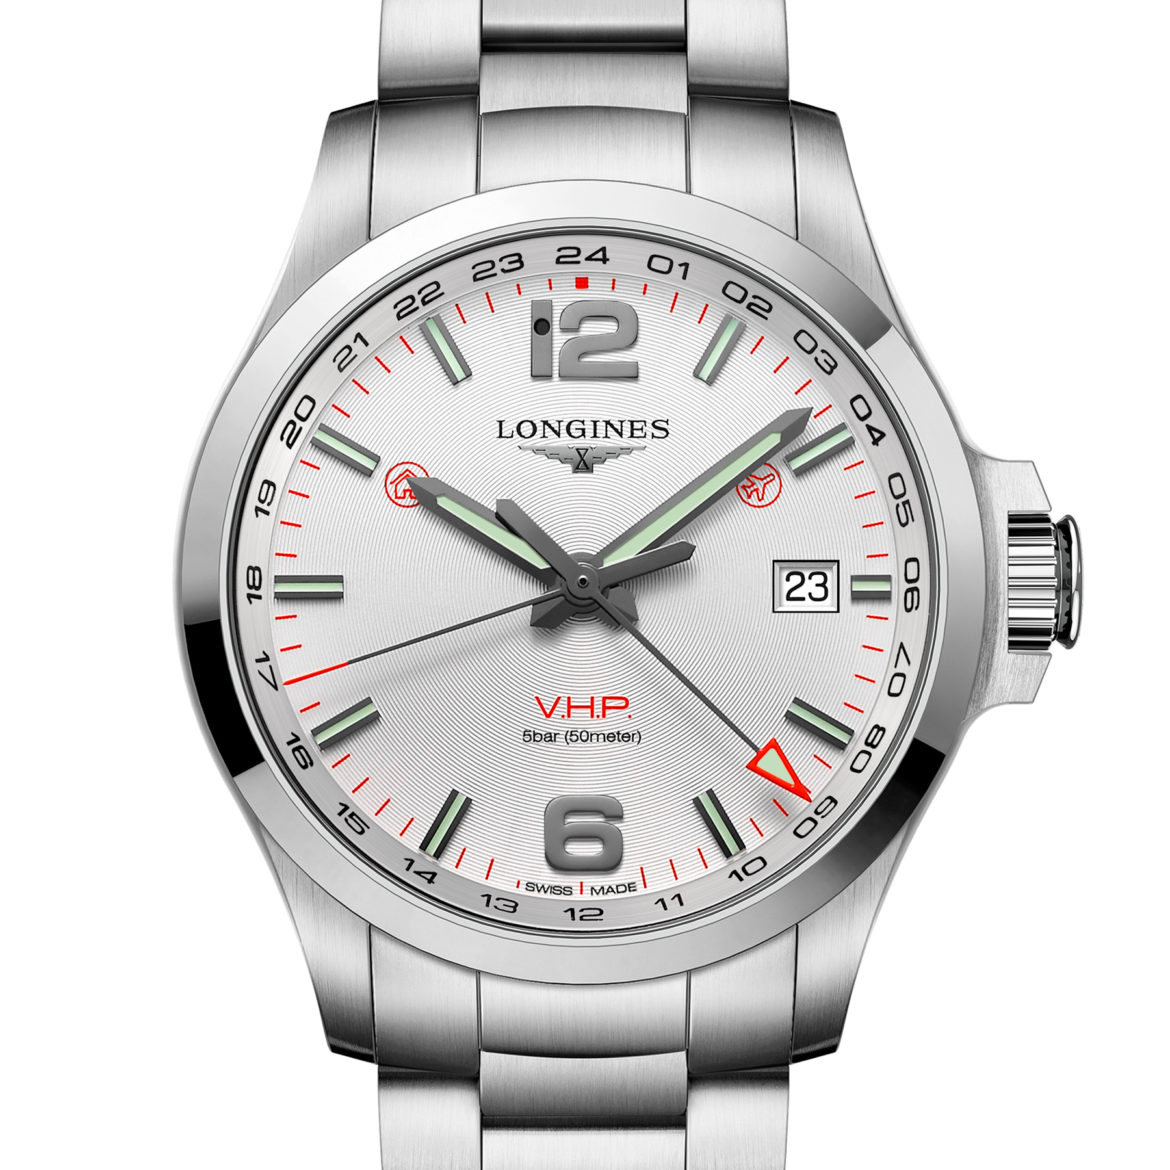 LONGINES</br/>Conquest VHP </br/>L37284766